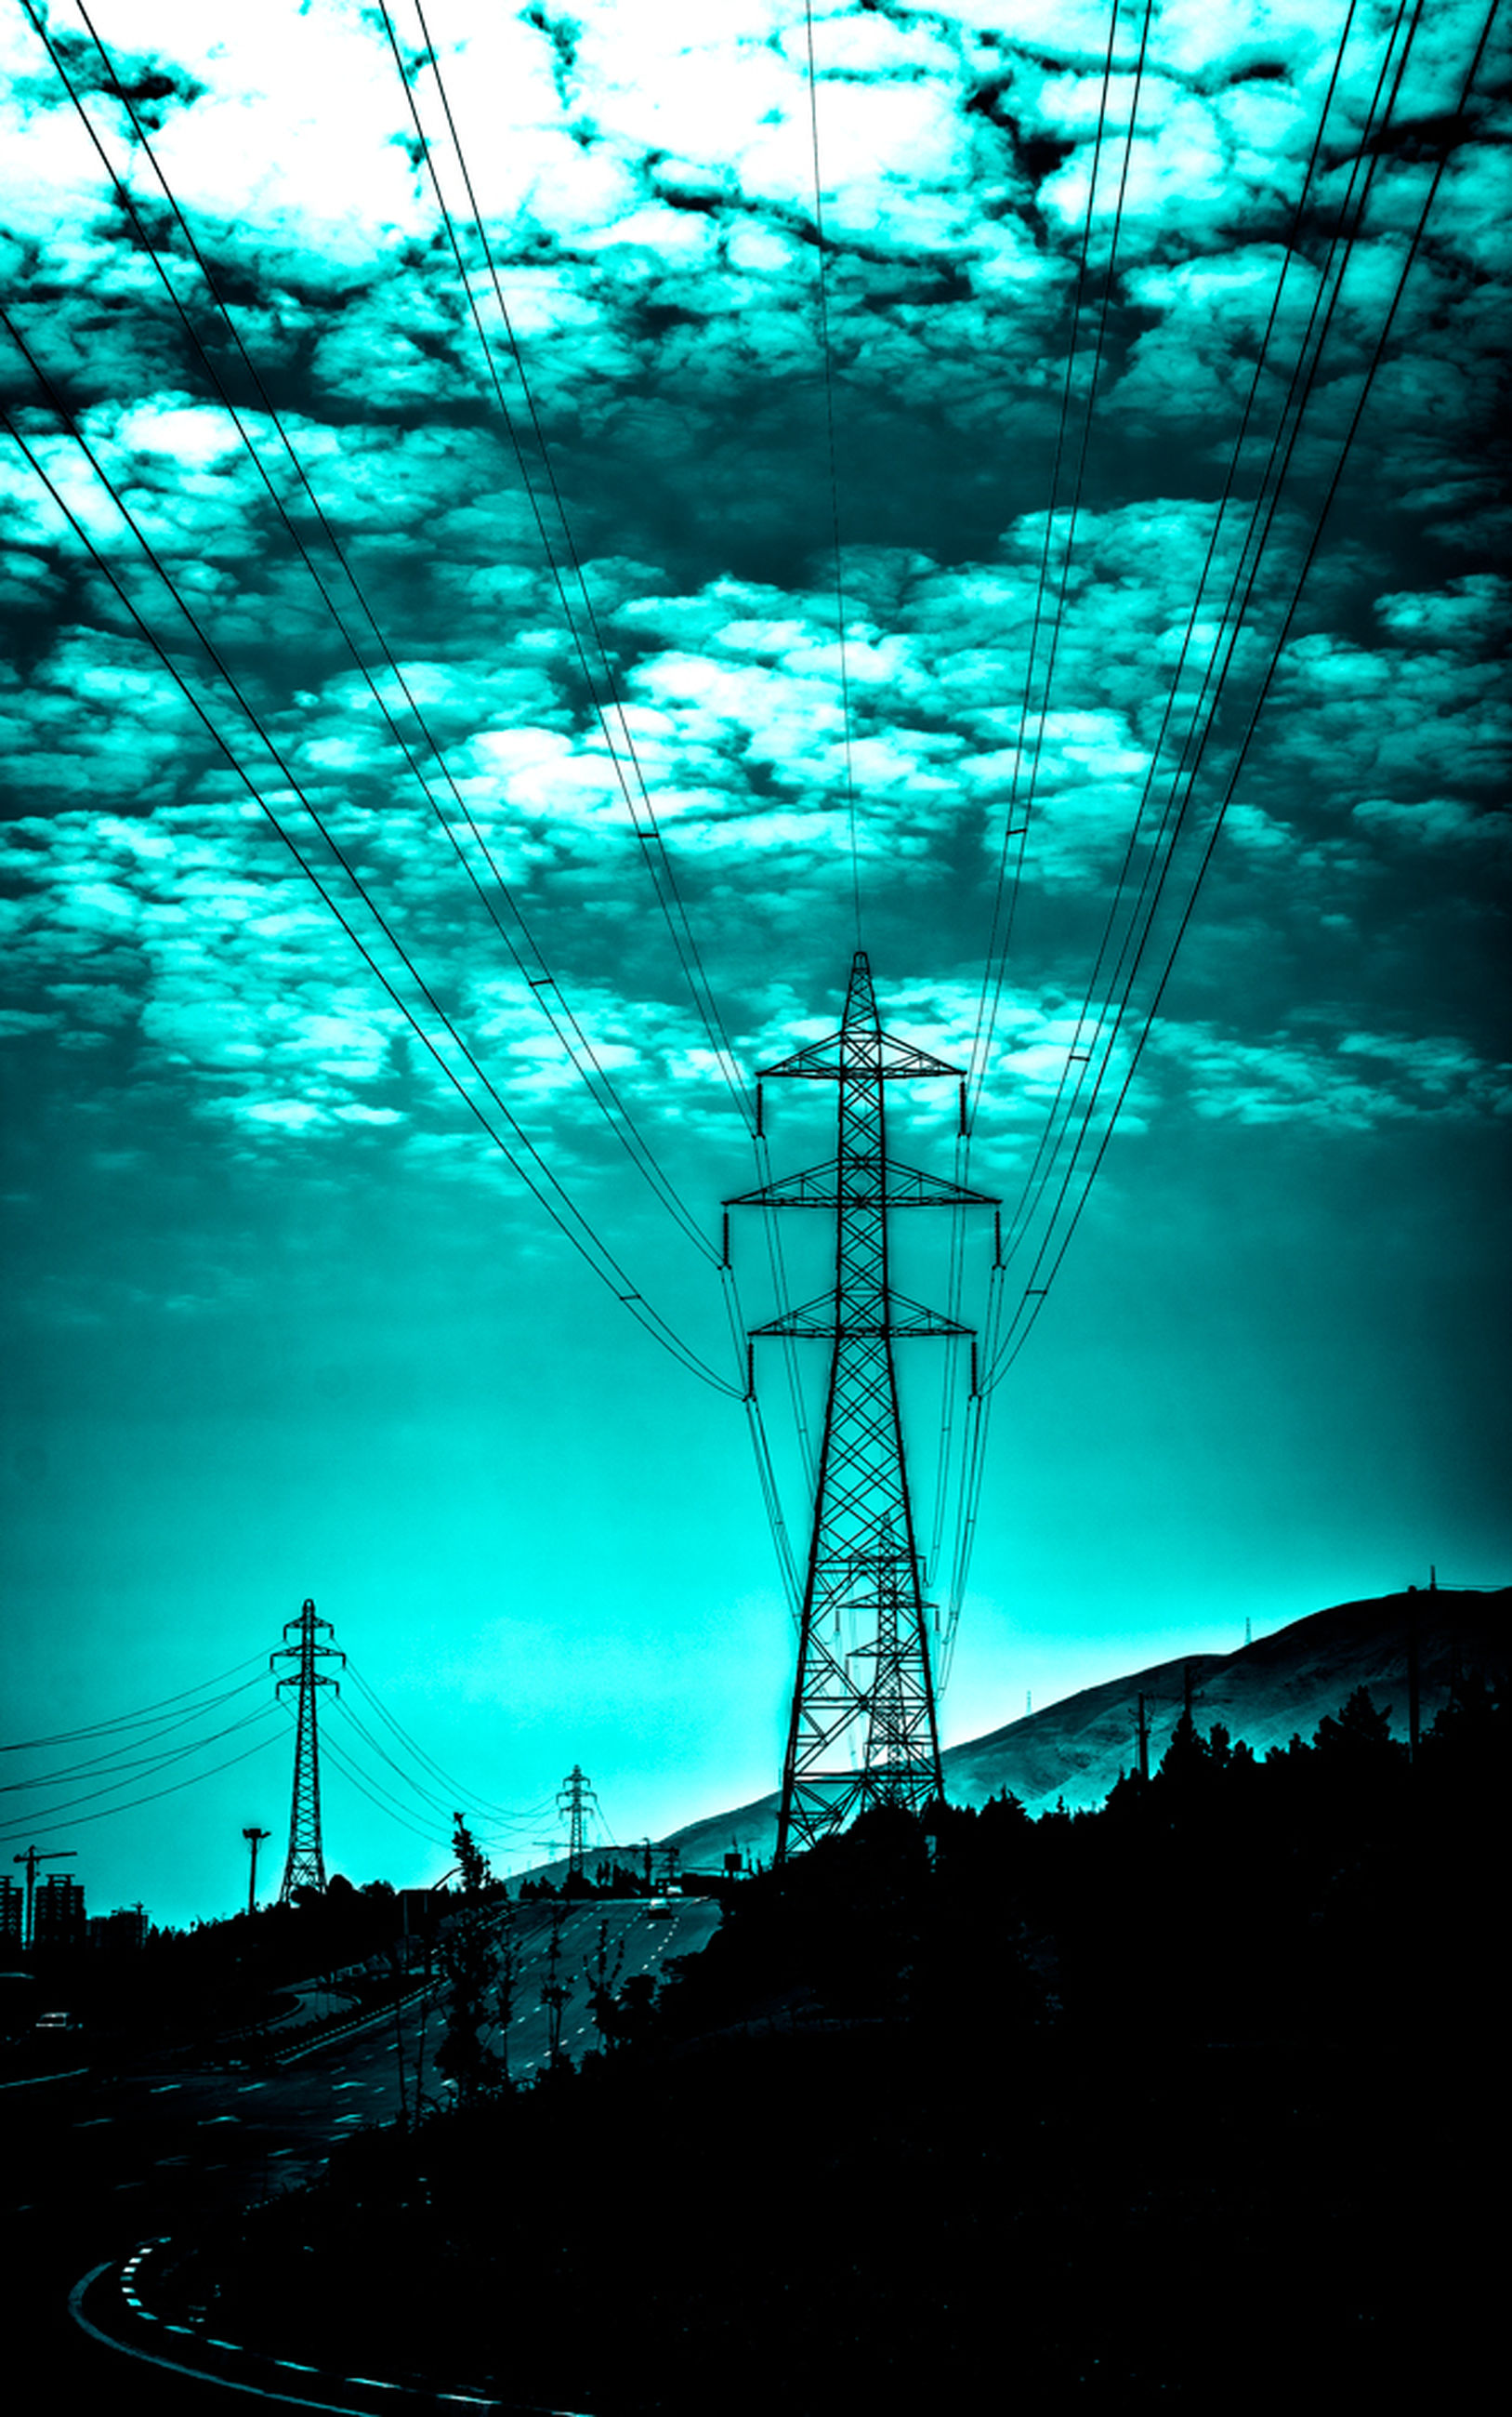 electricity pylon, power line, electricity, power supply, connection, fuel and power generation, technology, cable, sky, silhouette, low angle view, cloud - sky, power cable, blue, outdoors, no people, dusk, nature, sunset, cloud